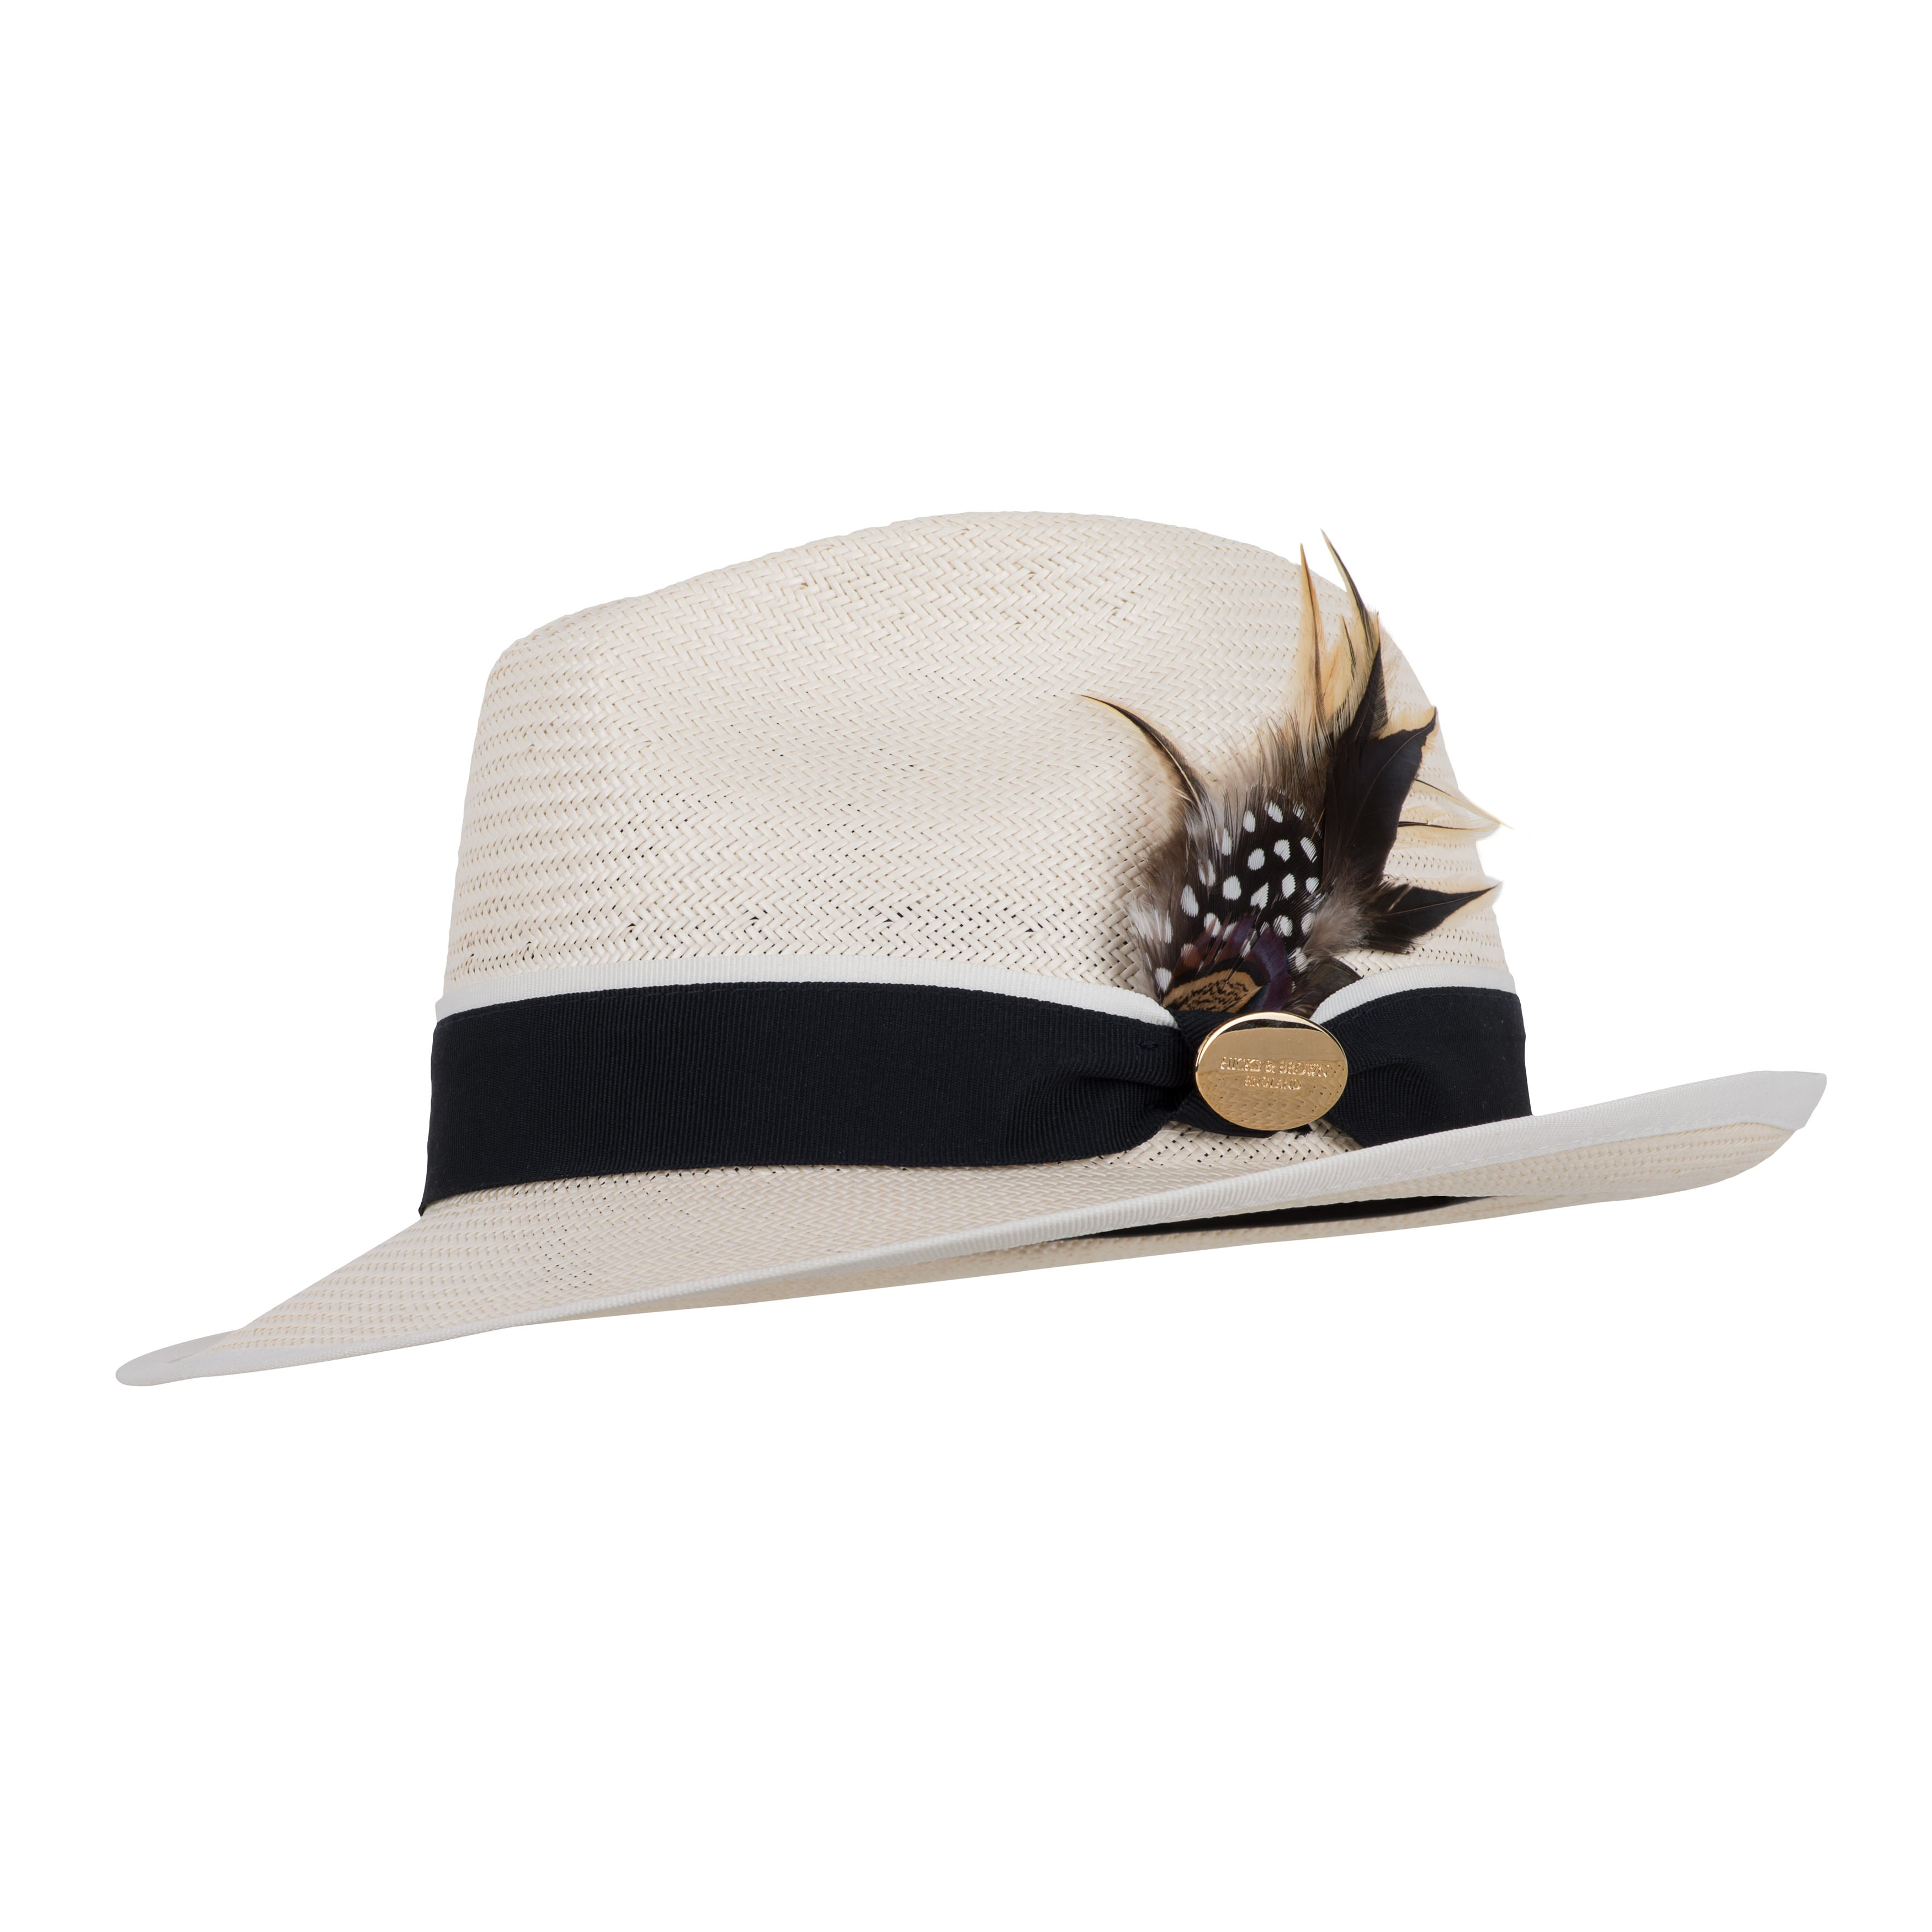 Hicks and Brown Holkham Fedora Summer Hat in Natural